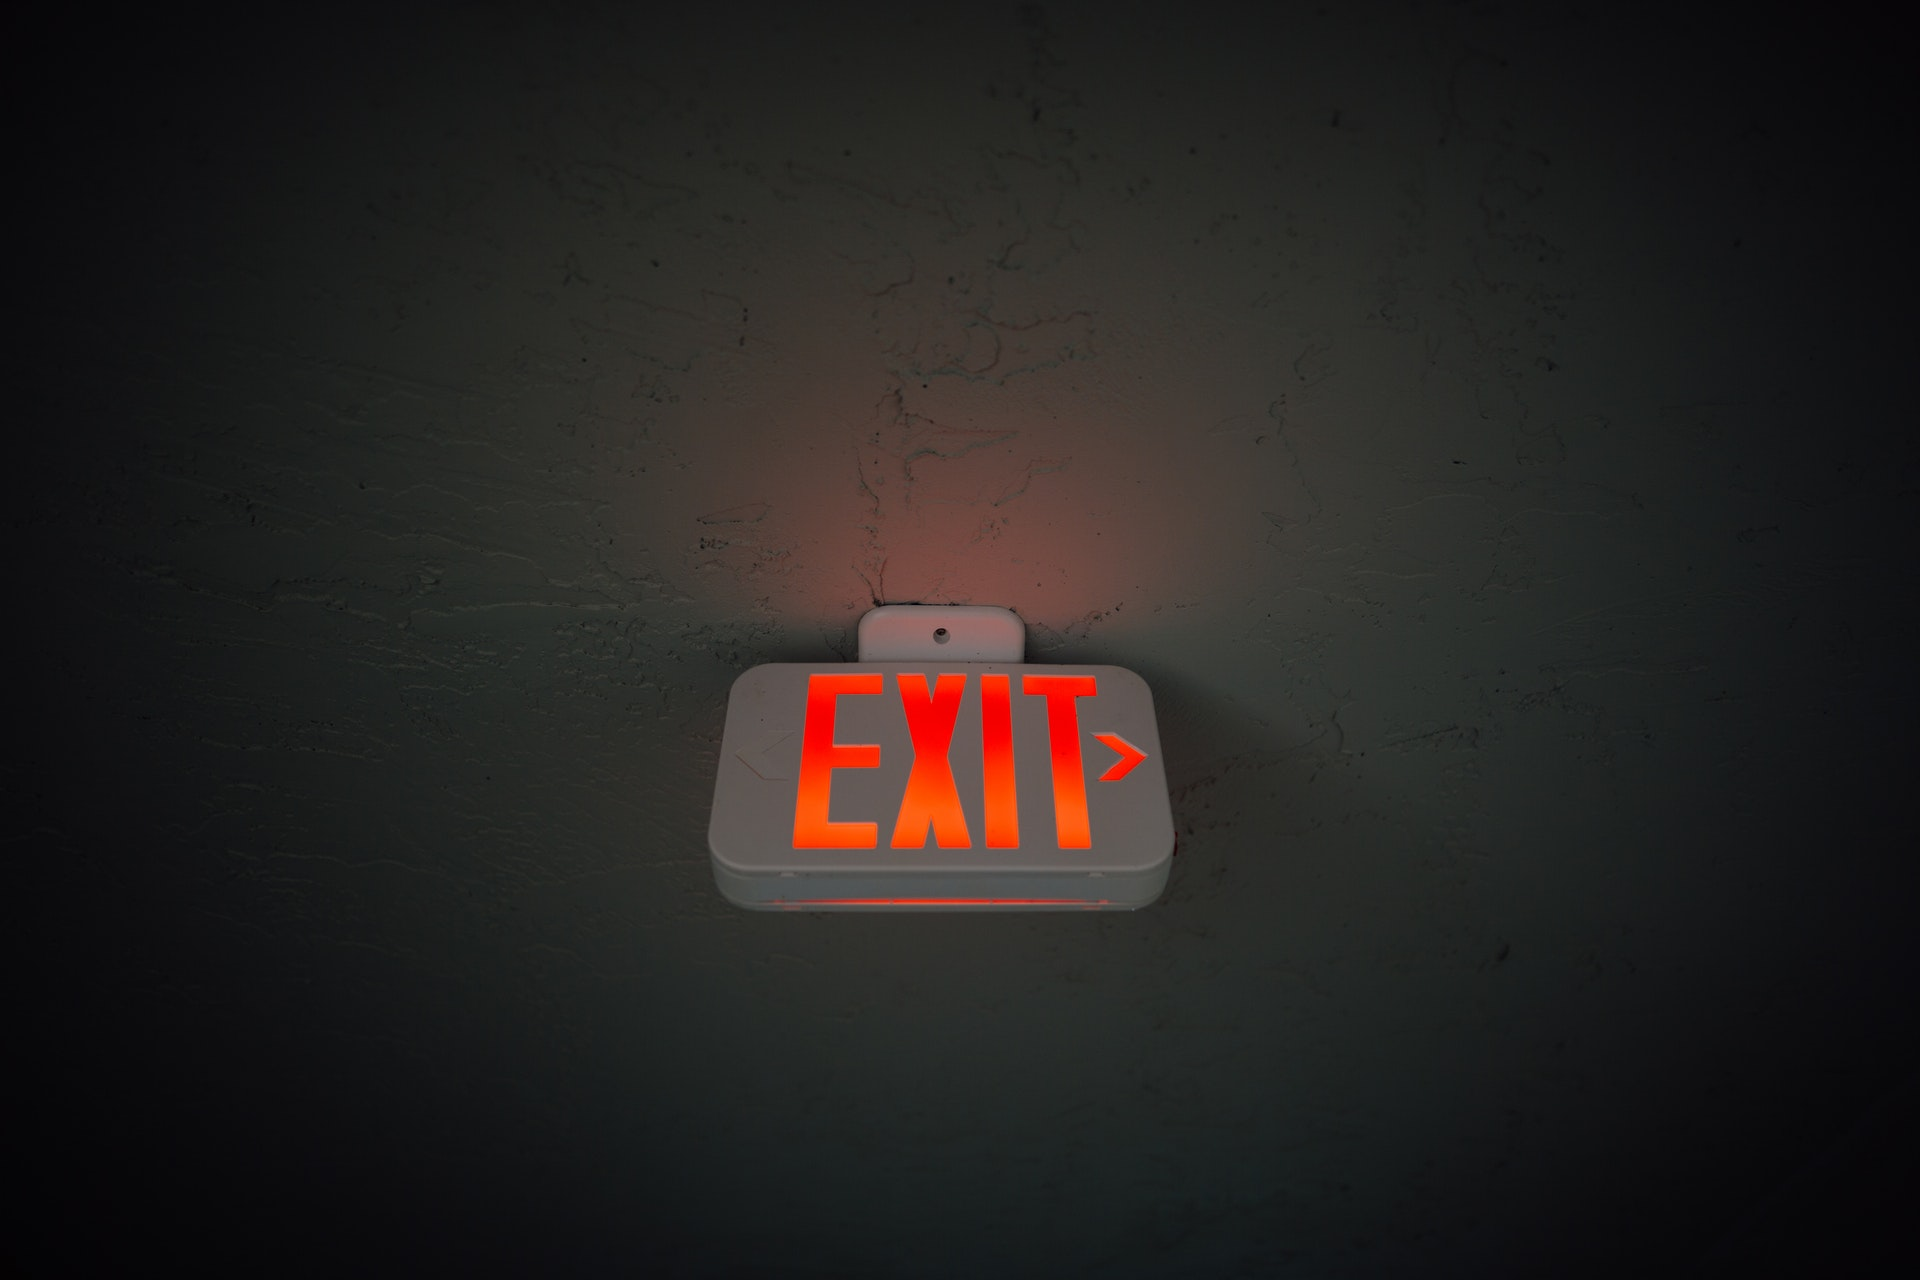 choosing a business exit strategy